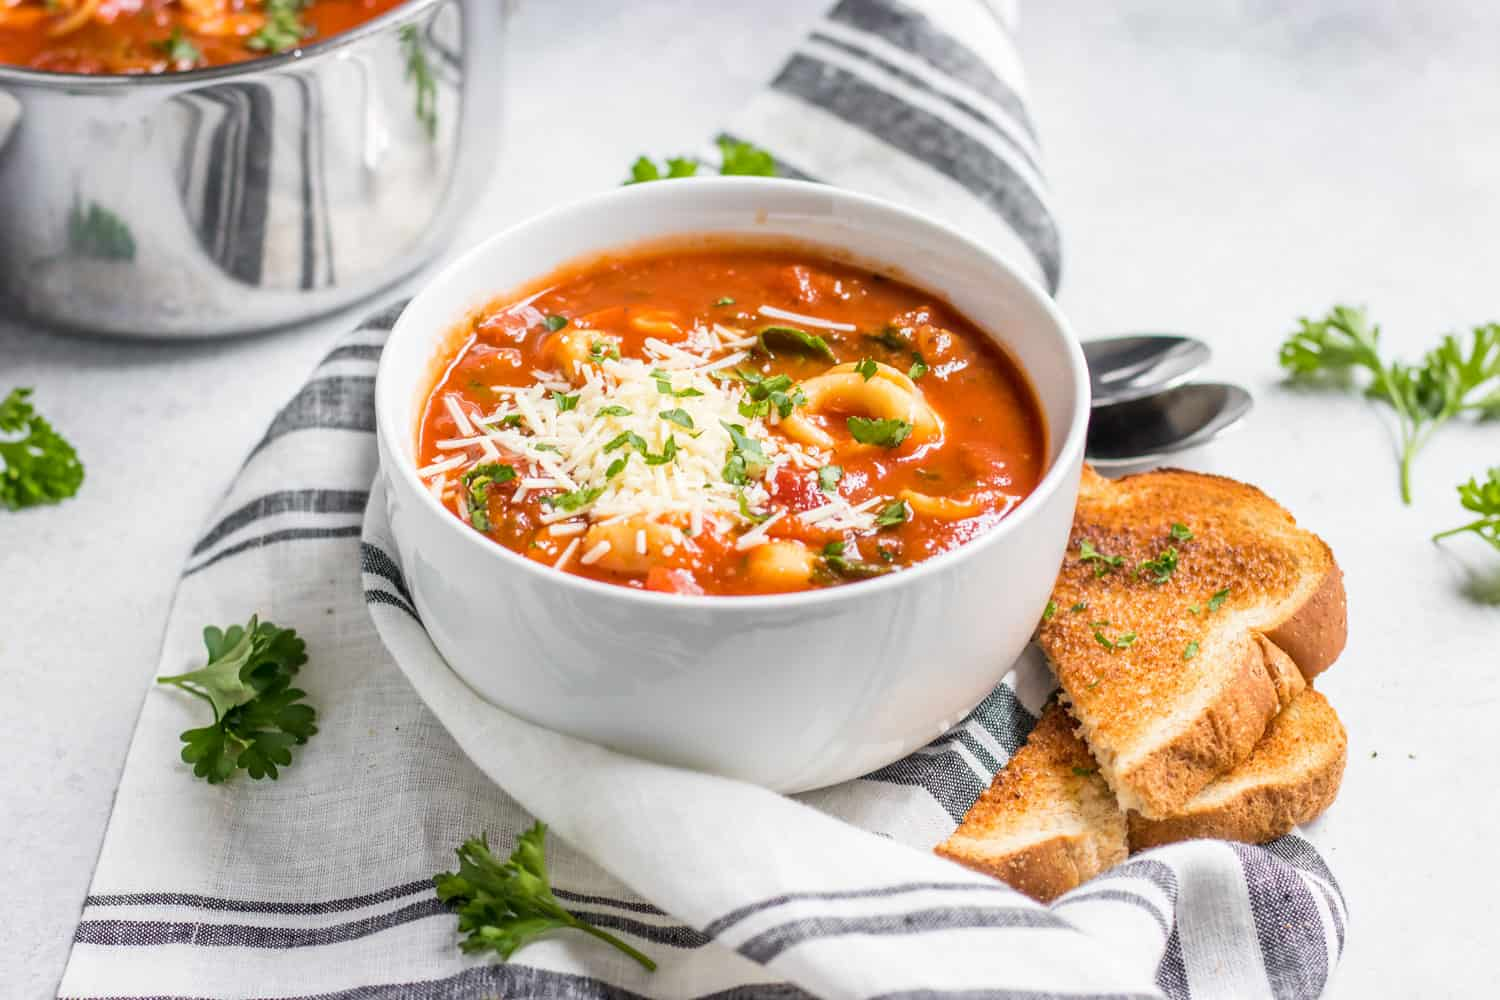 Tomato tortellini soup in bowl with fresh parsley, parmesan and a side of garlic toast.